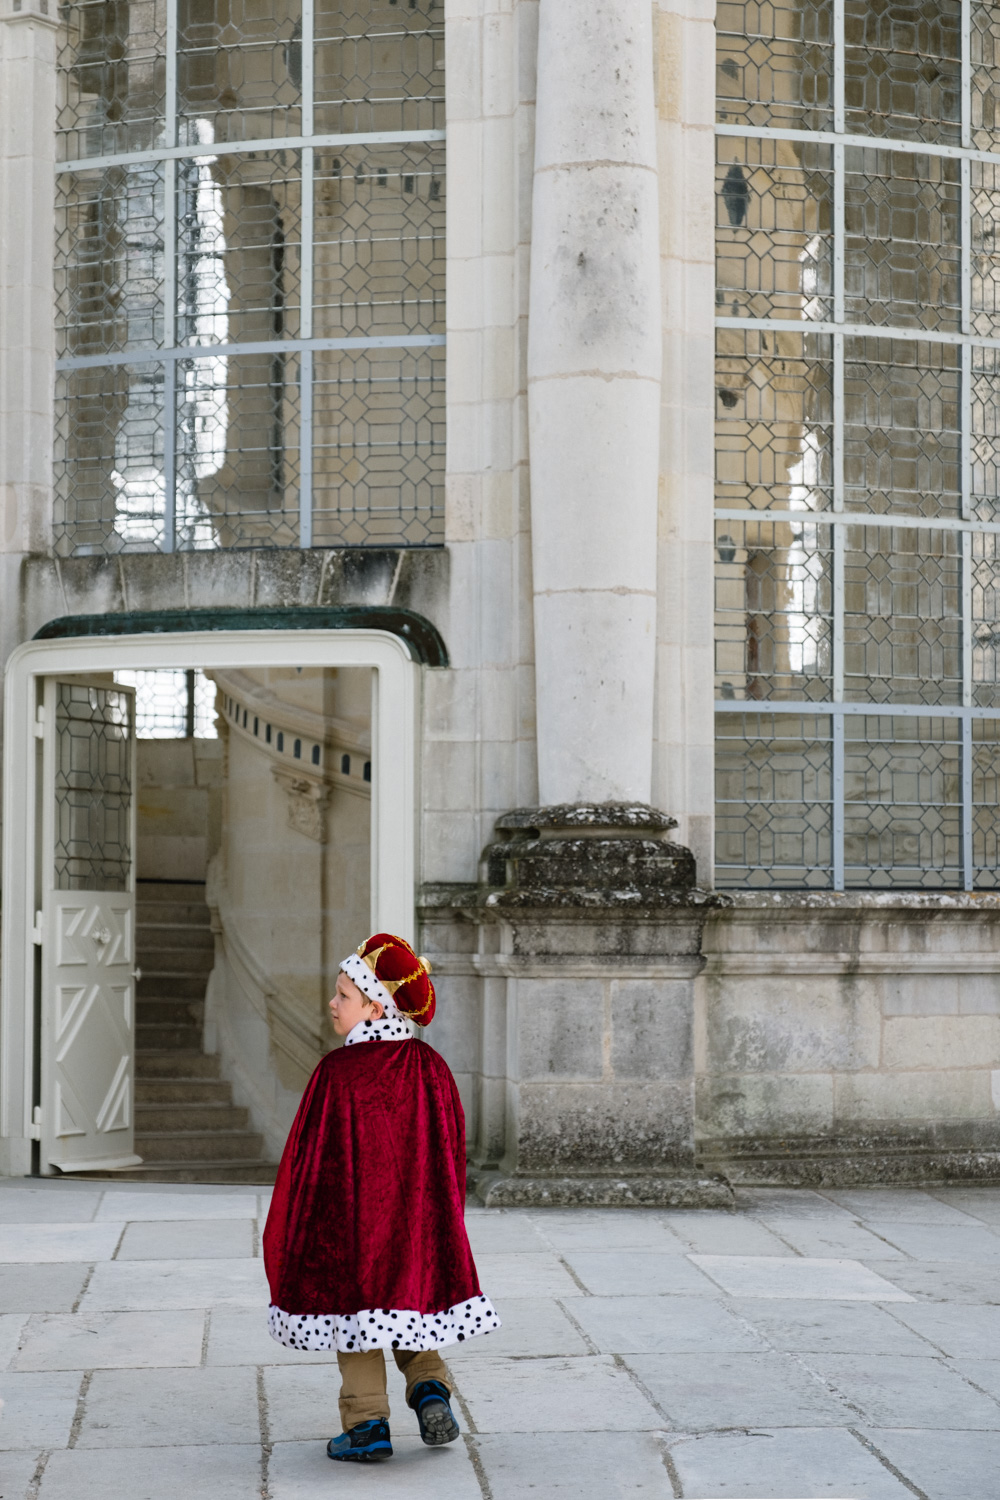 A little boy dressed like a King in Chambord